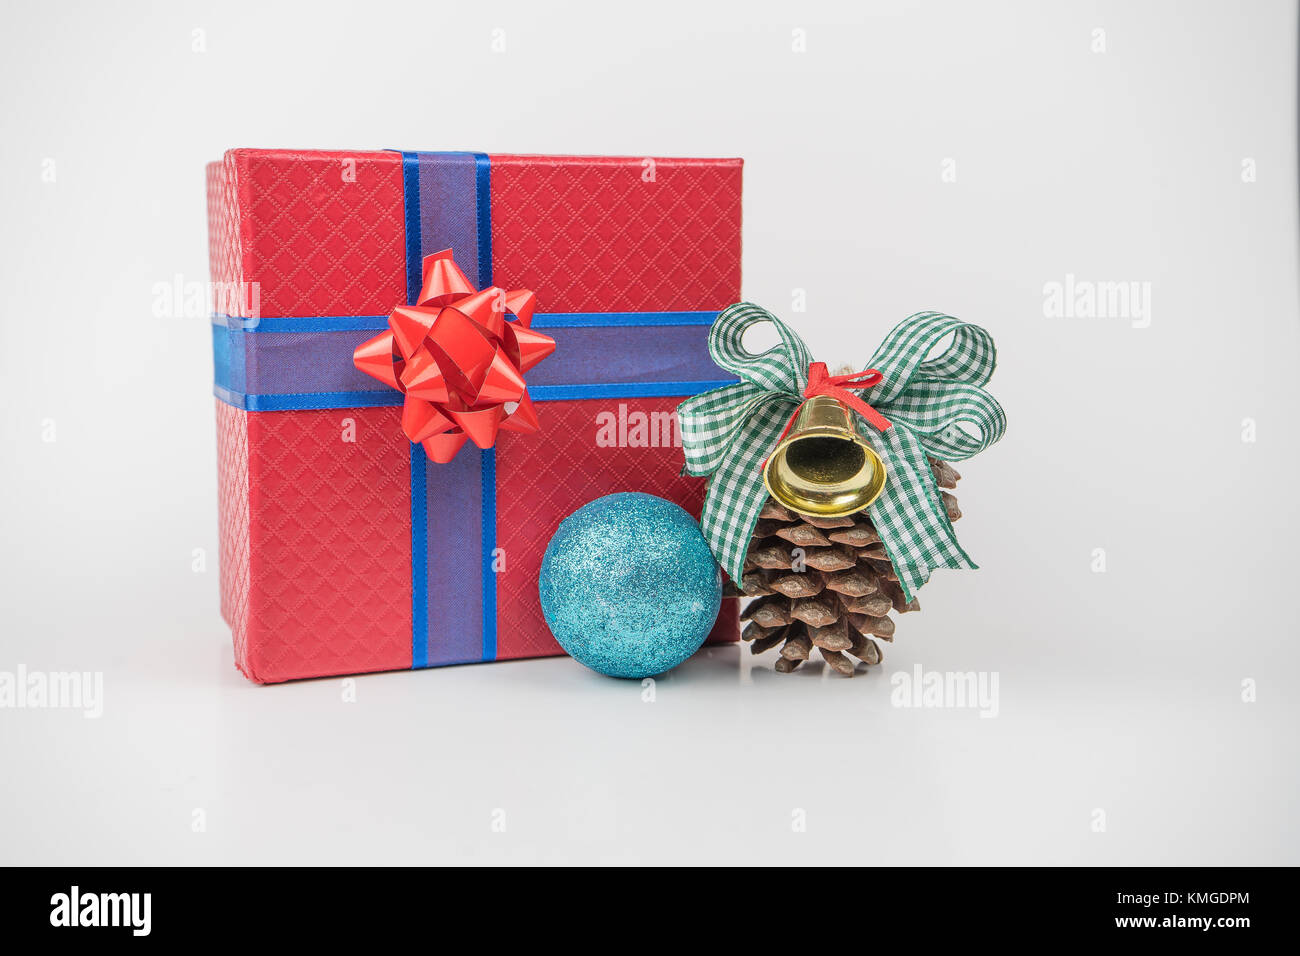 Colorful Gift Packages New Year Valentine S Day Stock Photo